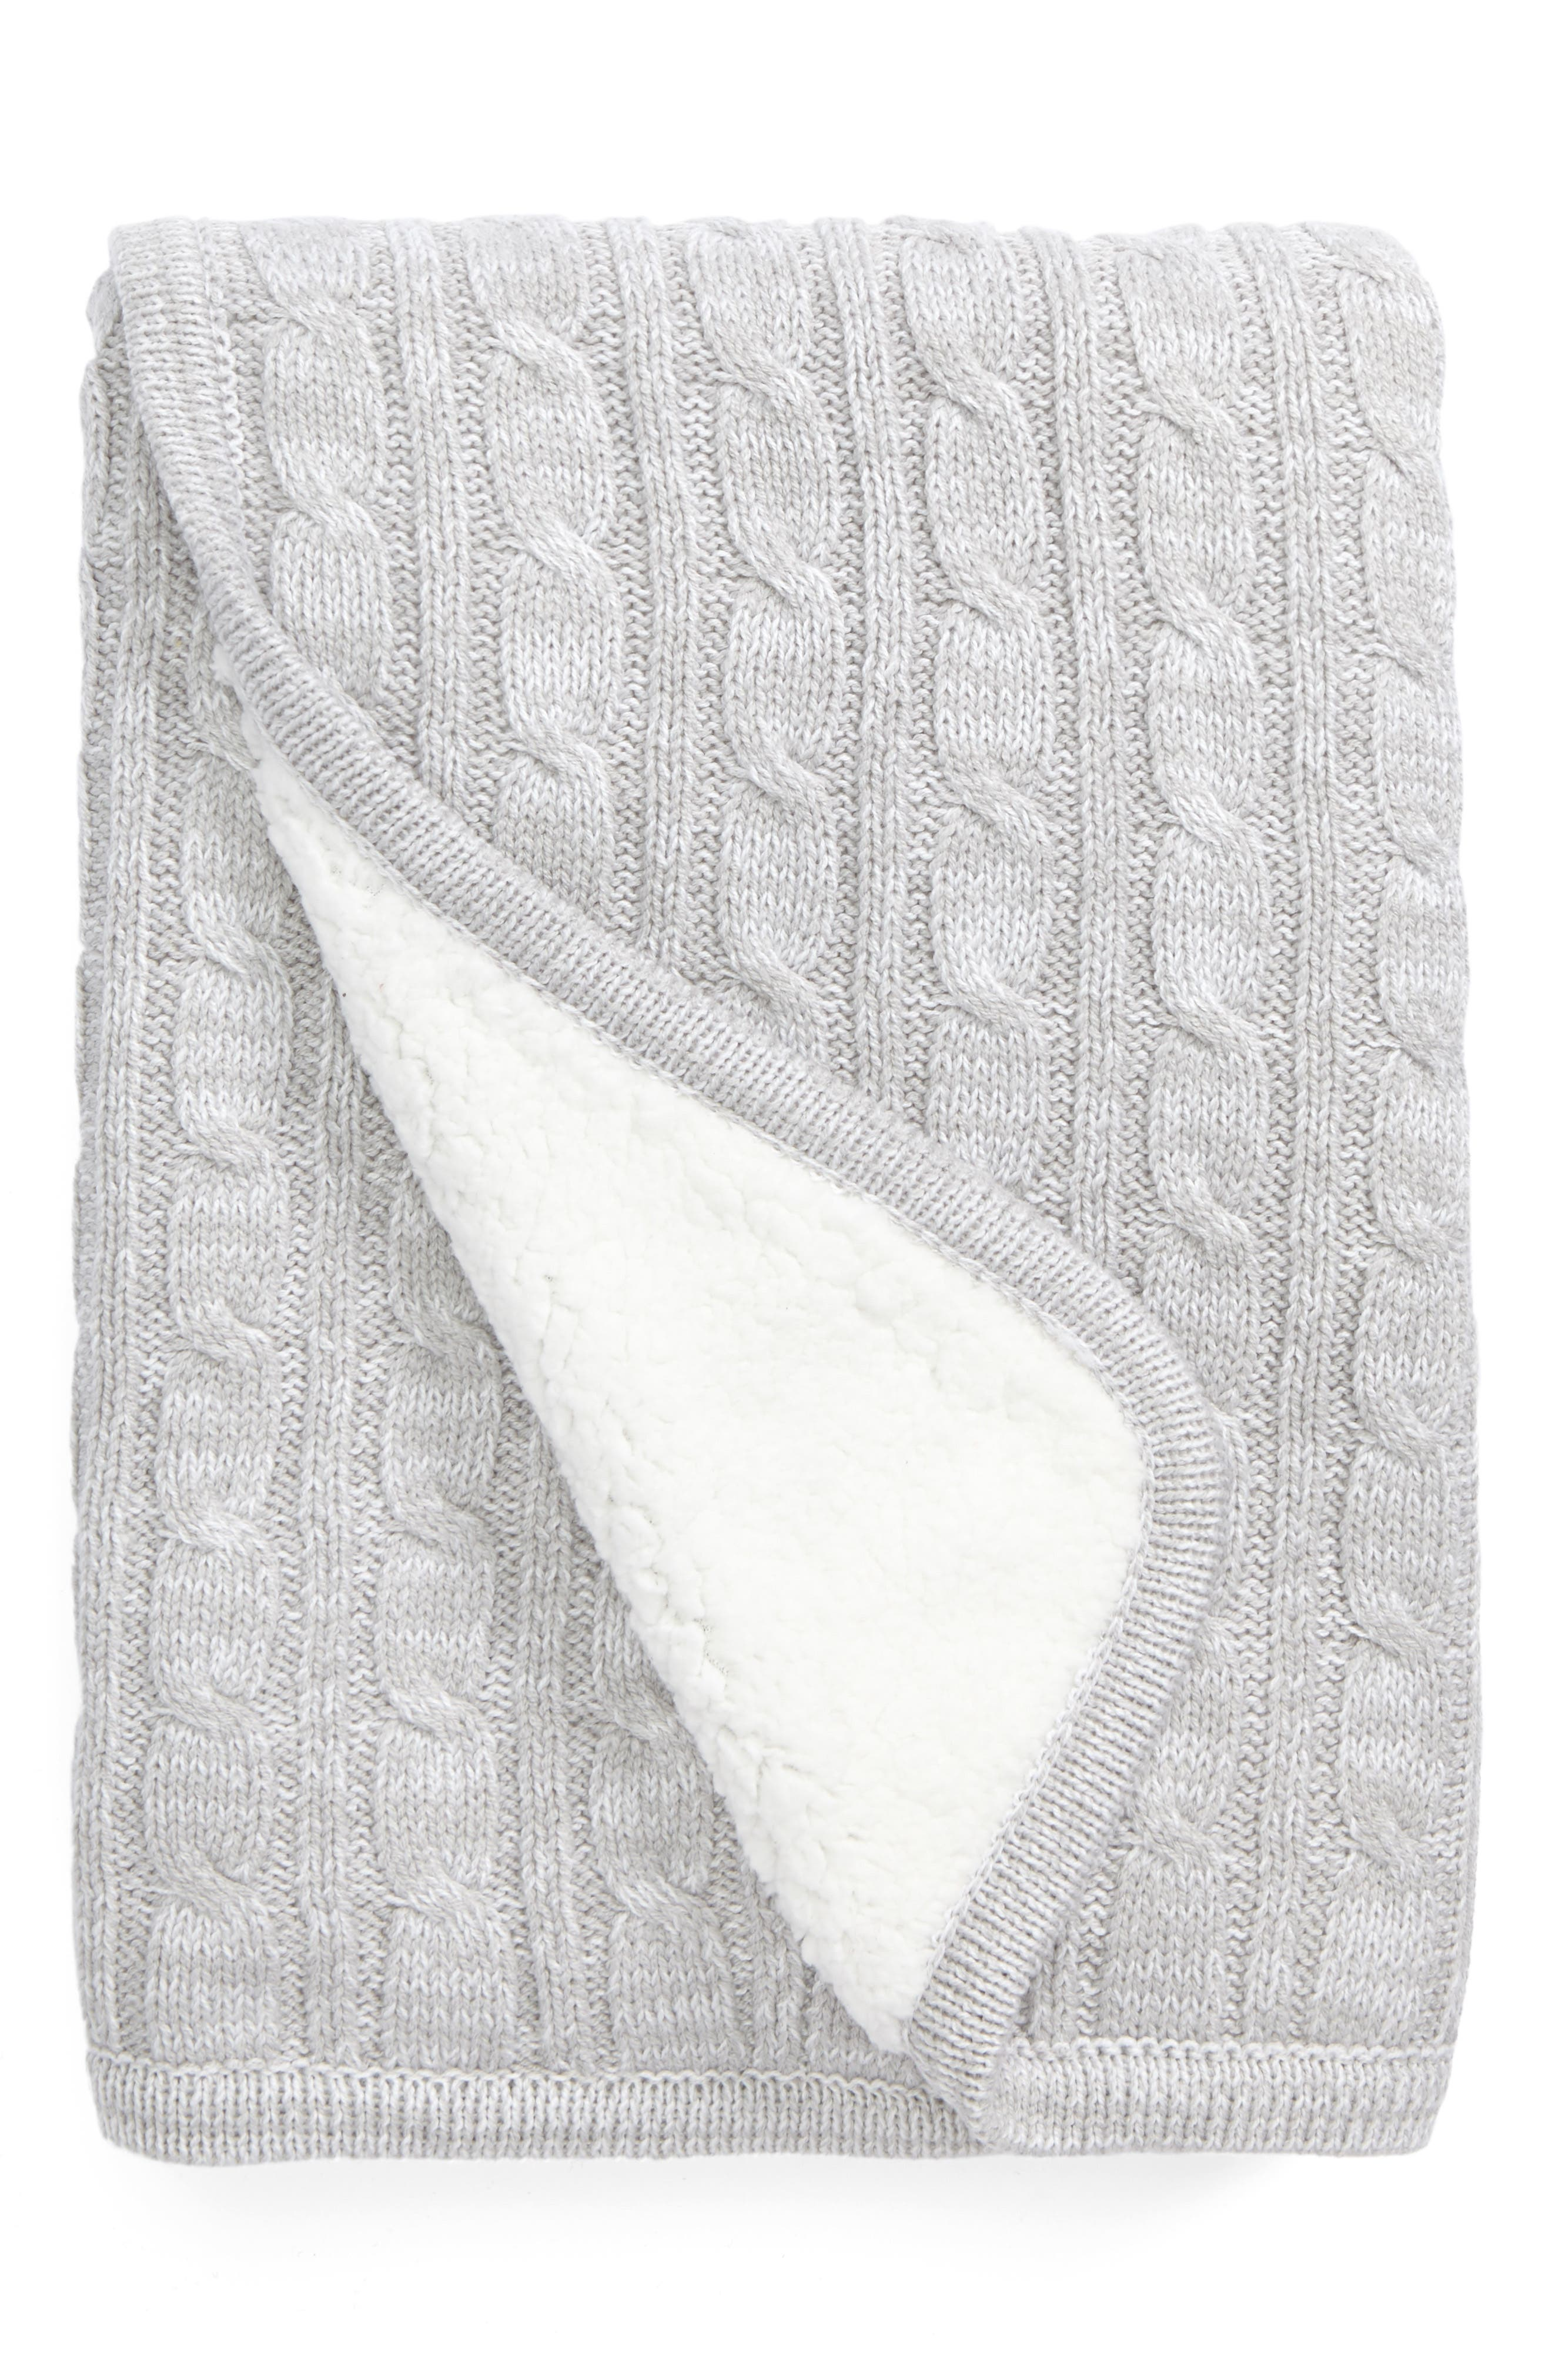 Alternate Image 1 Selected - Nordstrom Baby Cable Knit Blanket